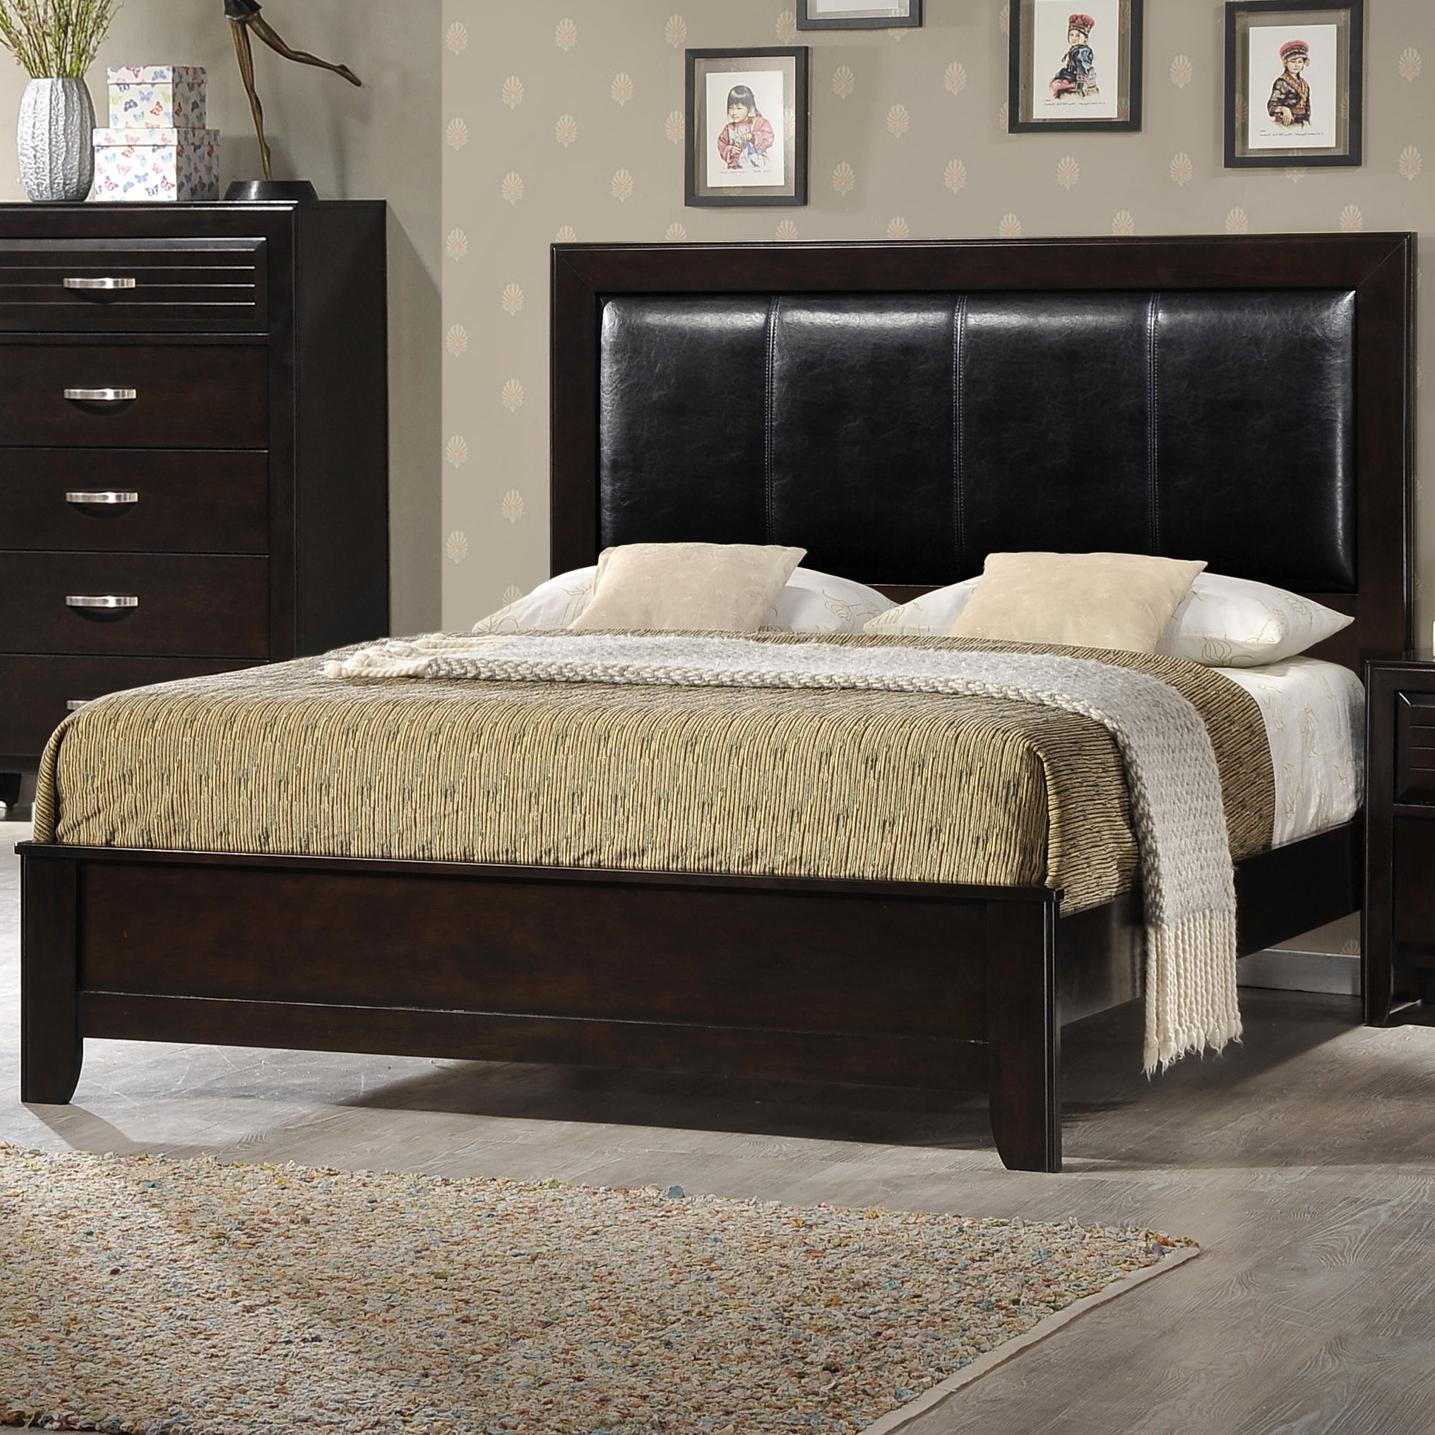 Crown Mark Jocelyn Queen Upholstered Bed - Item Number: B7400-Q-HBFB+RAIL